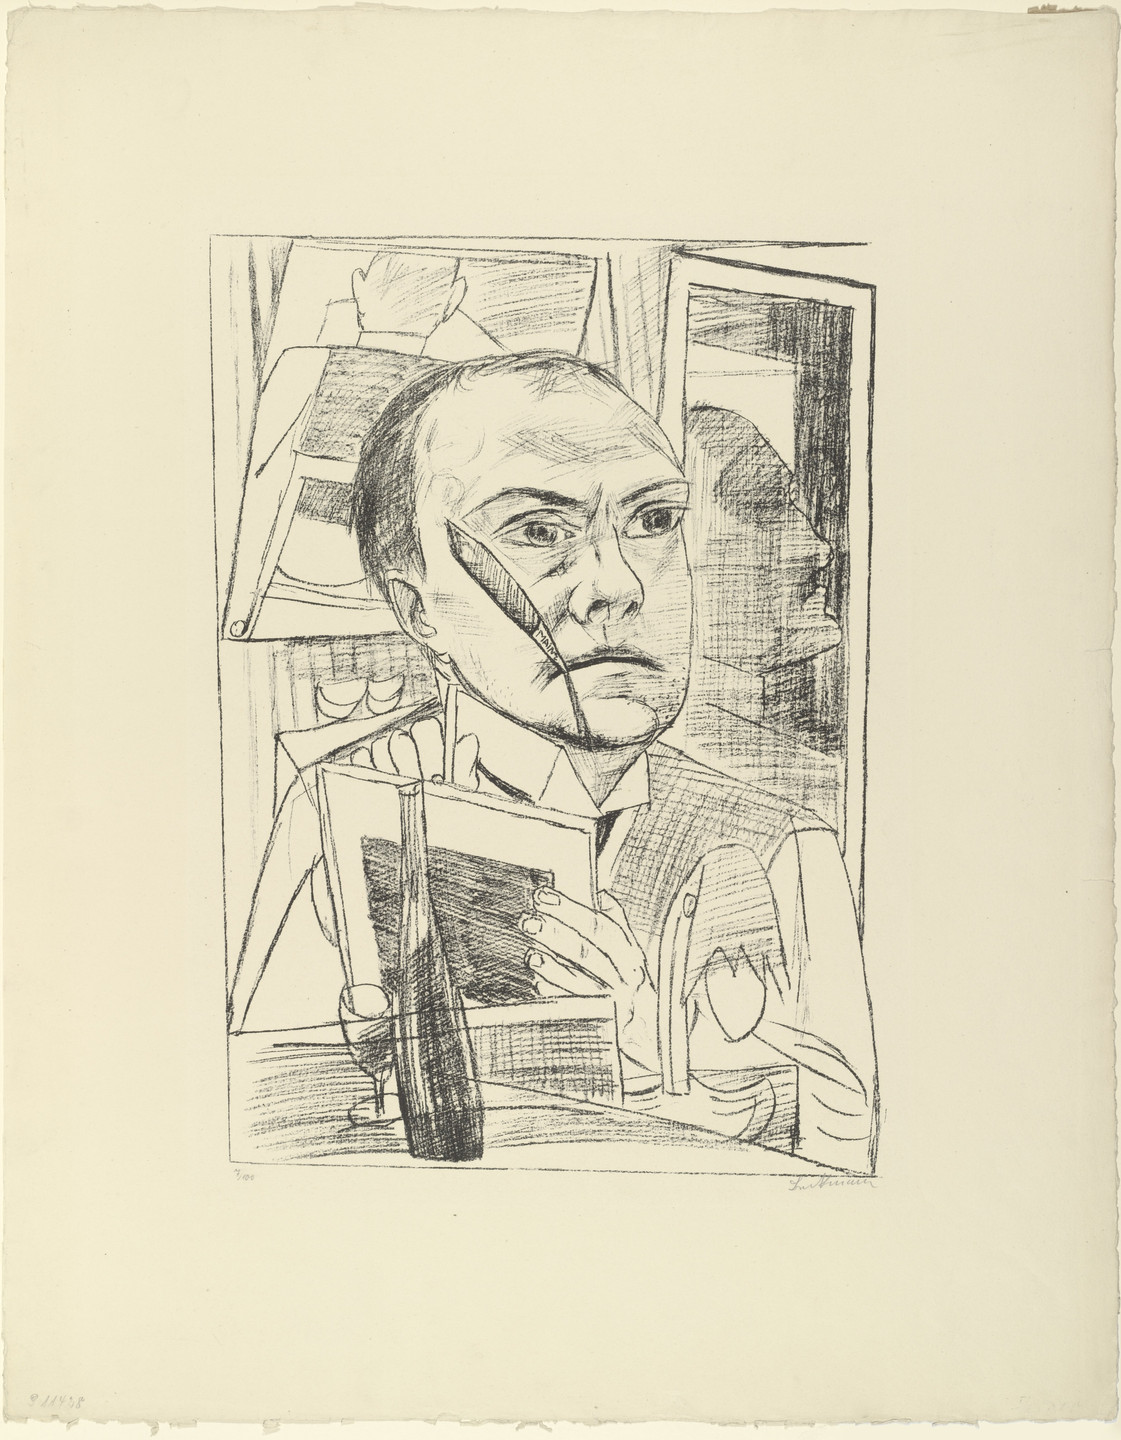 Max Beckmann. Self-Portrait in the Hotel (Selbst im Hotel) from Trip to Berlin 1922 (Berliner Reise 1922). 1922